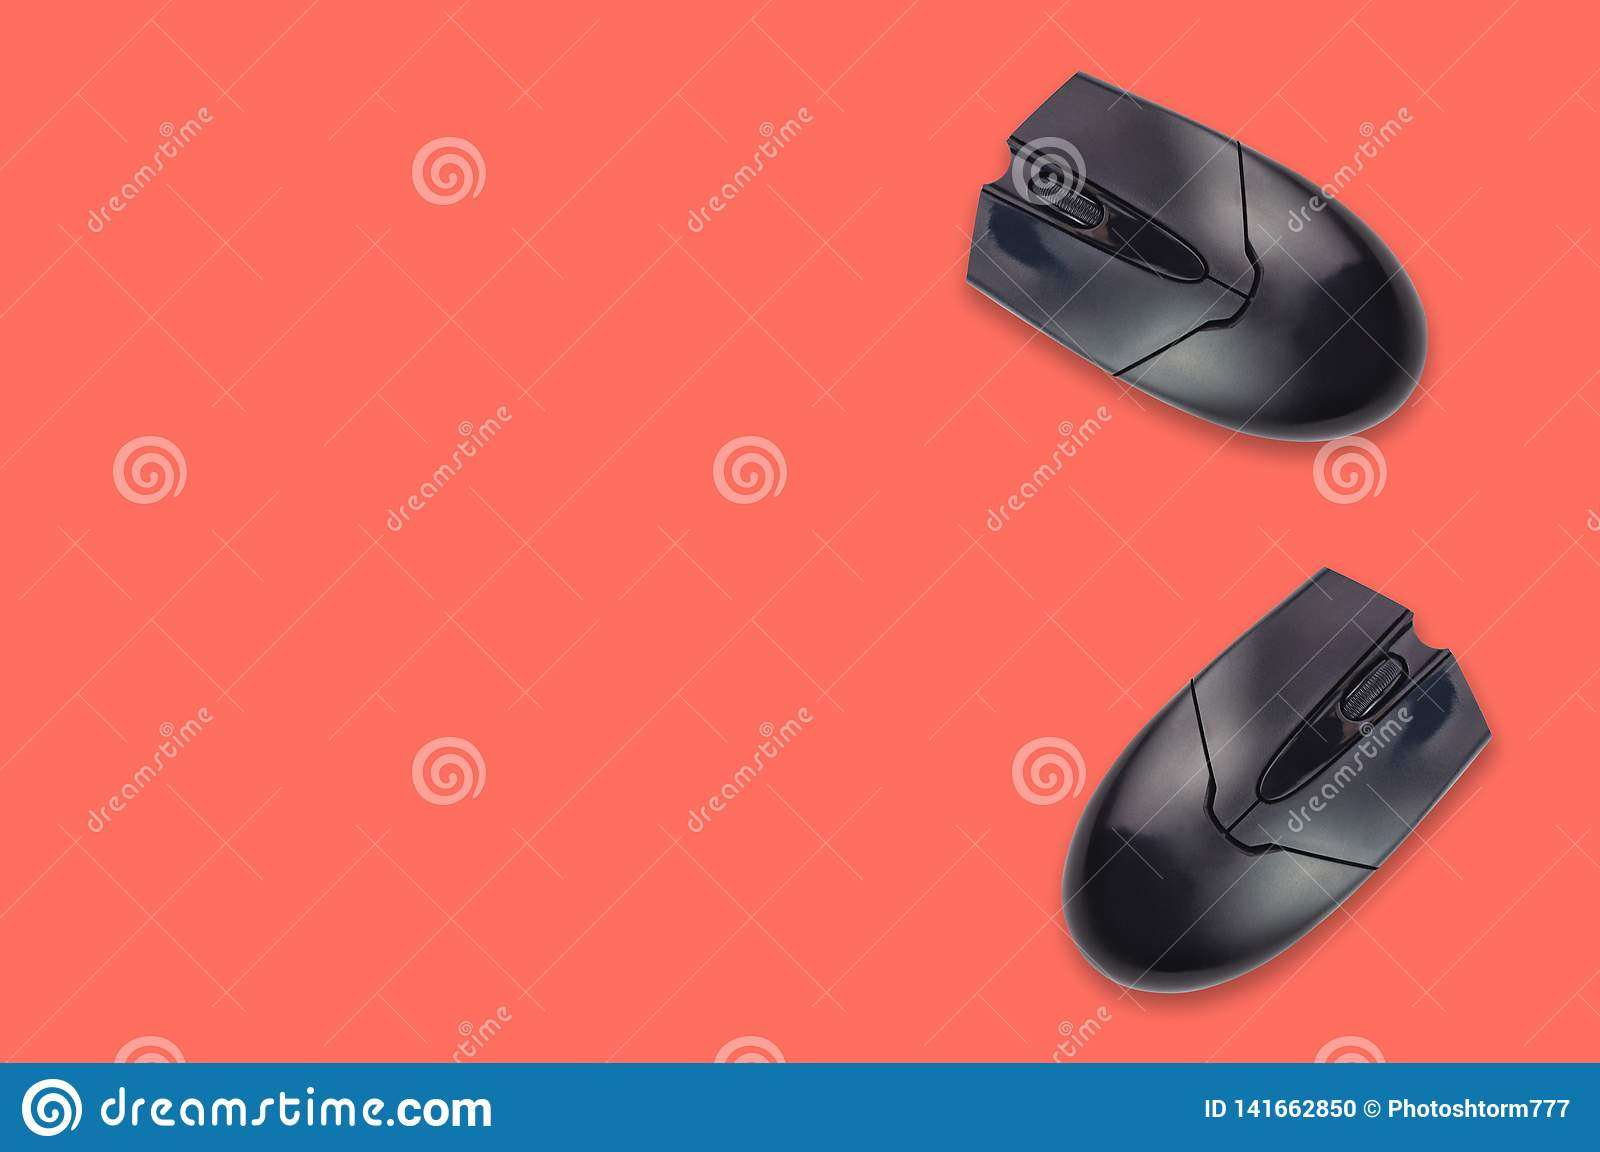 Two black plastic optical computer mouses on office table coral color. Top view. Copy space for your text